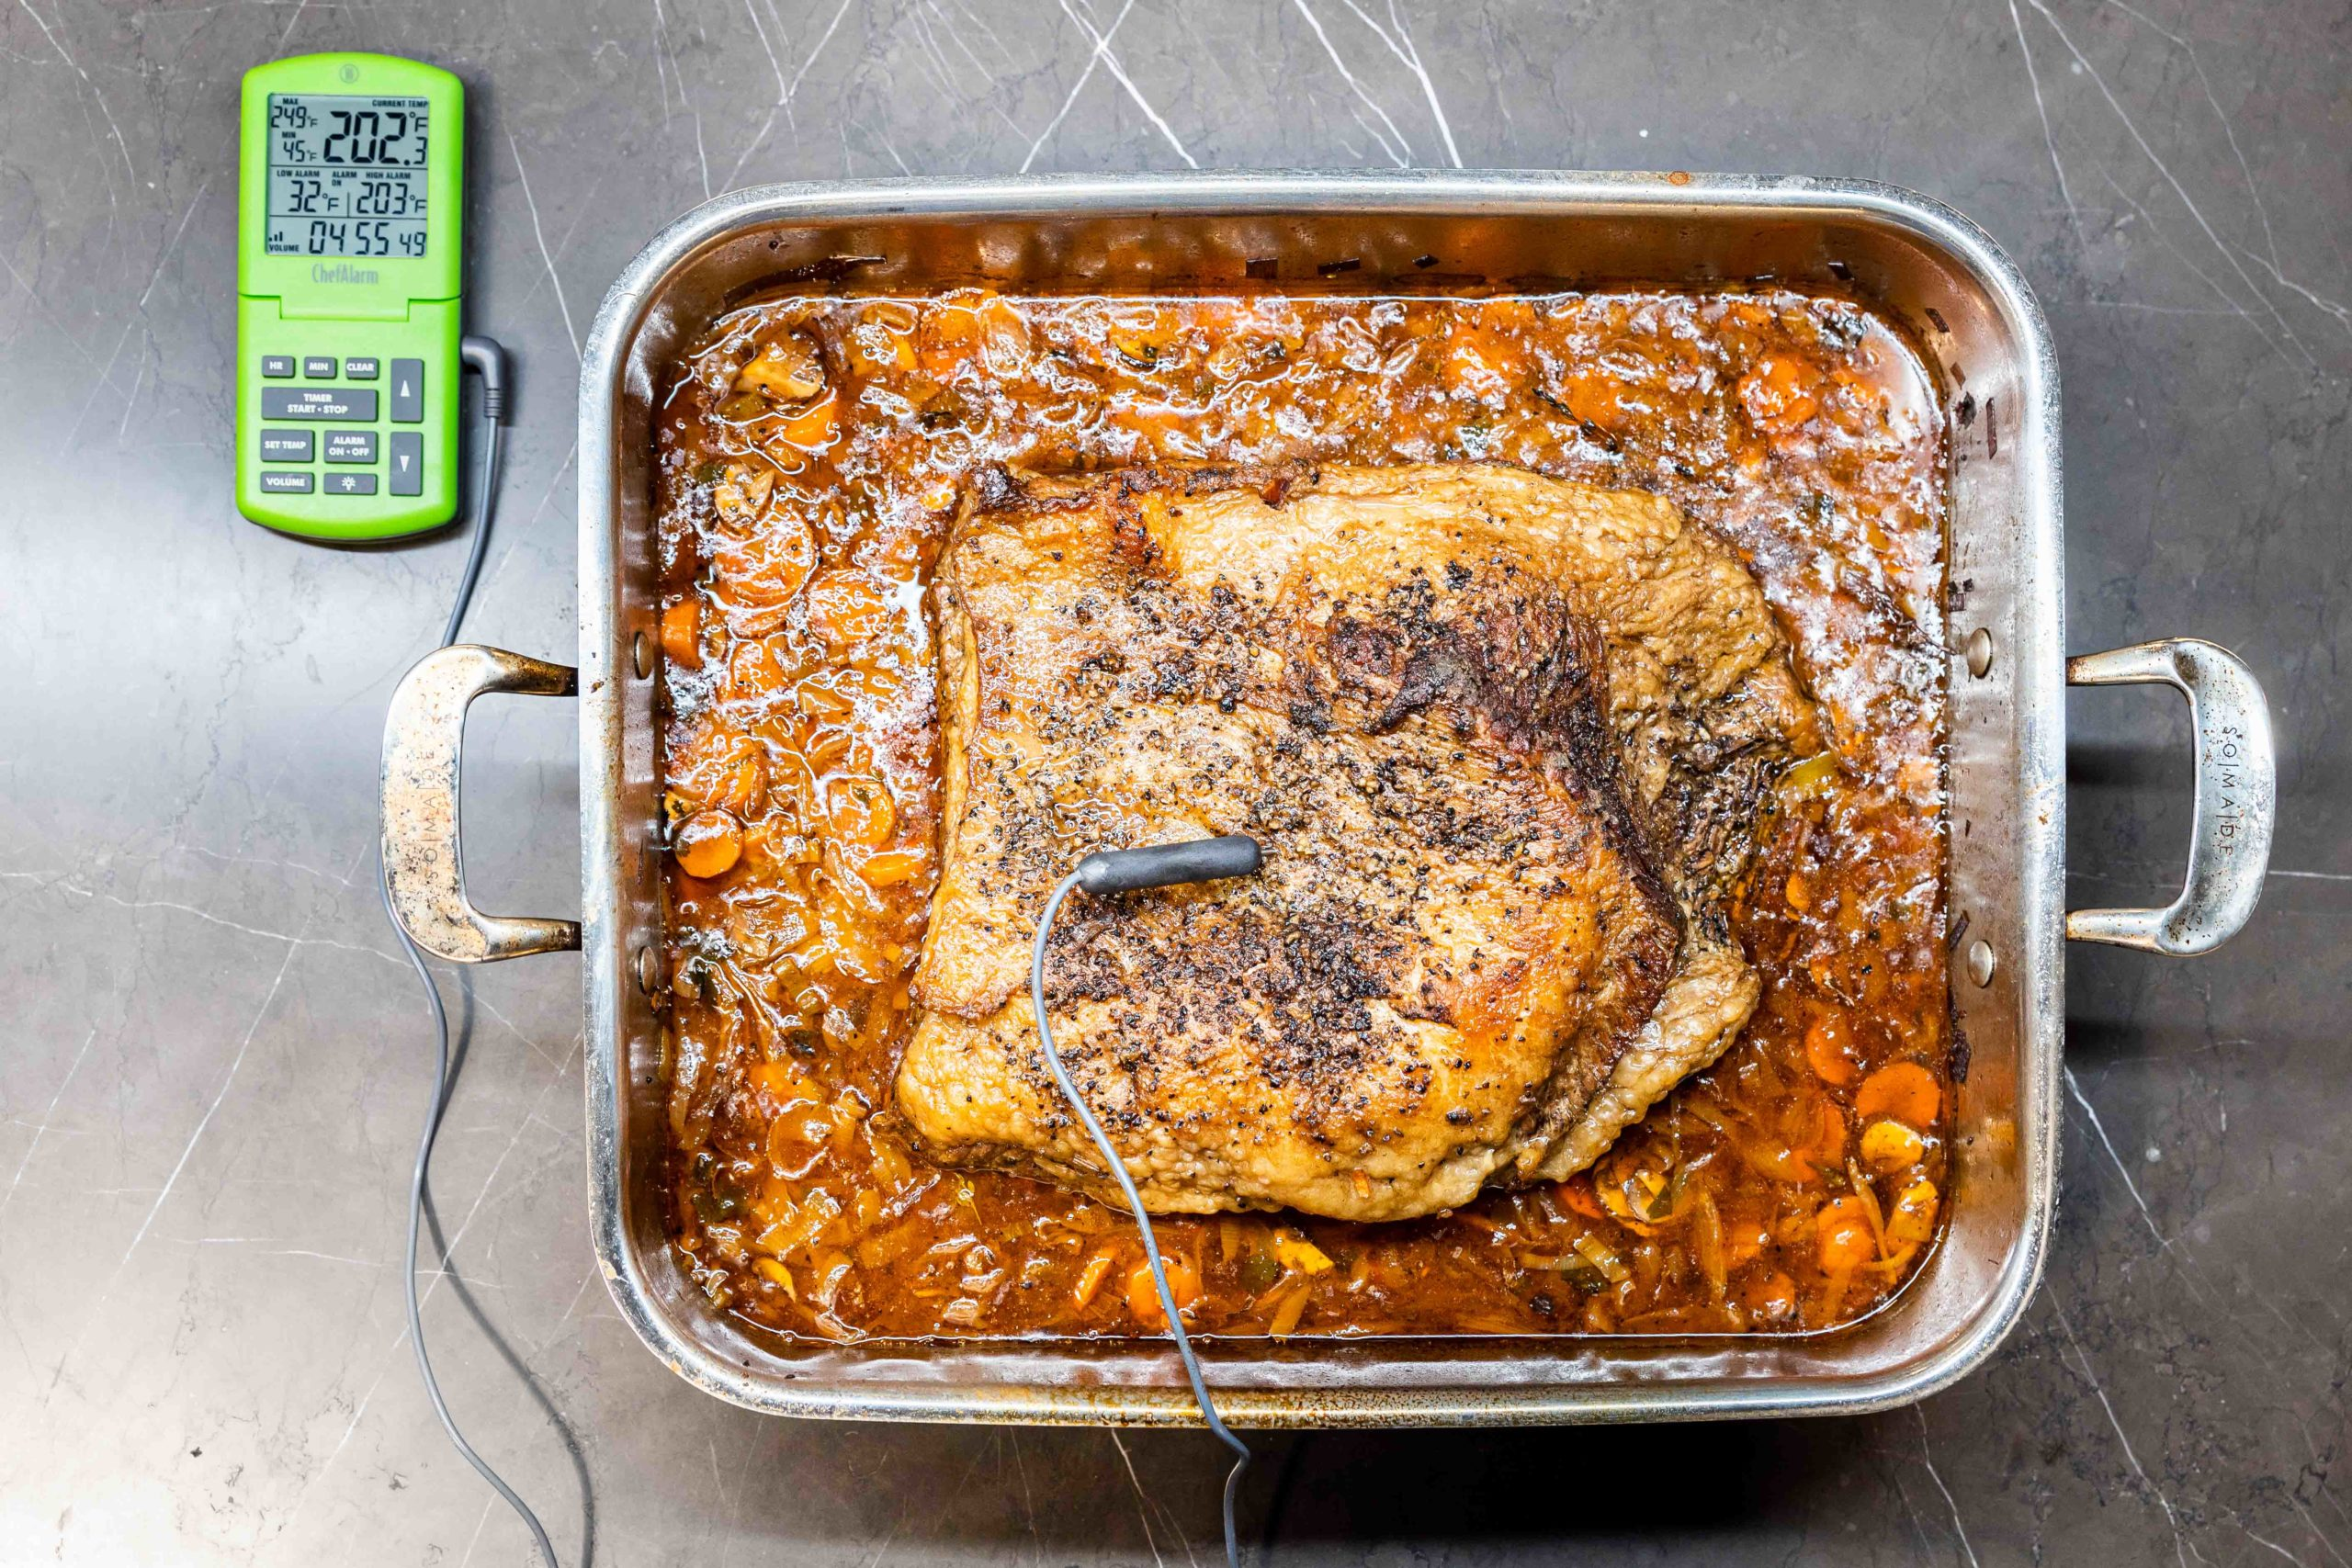 Braised brisket with a ChefAlarm